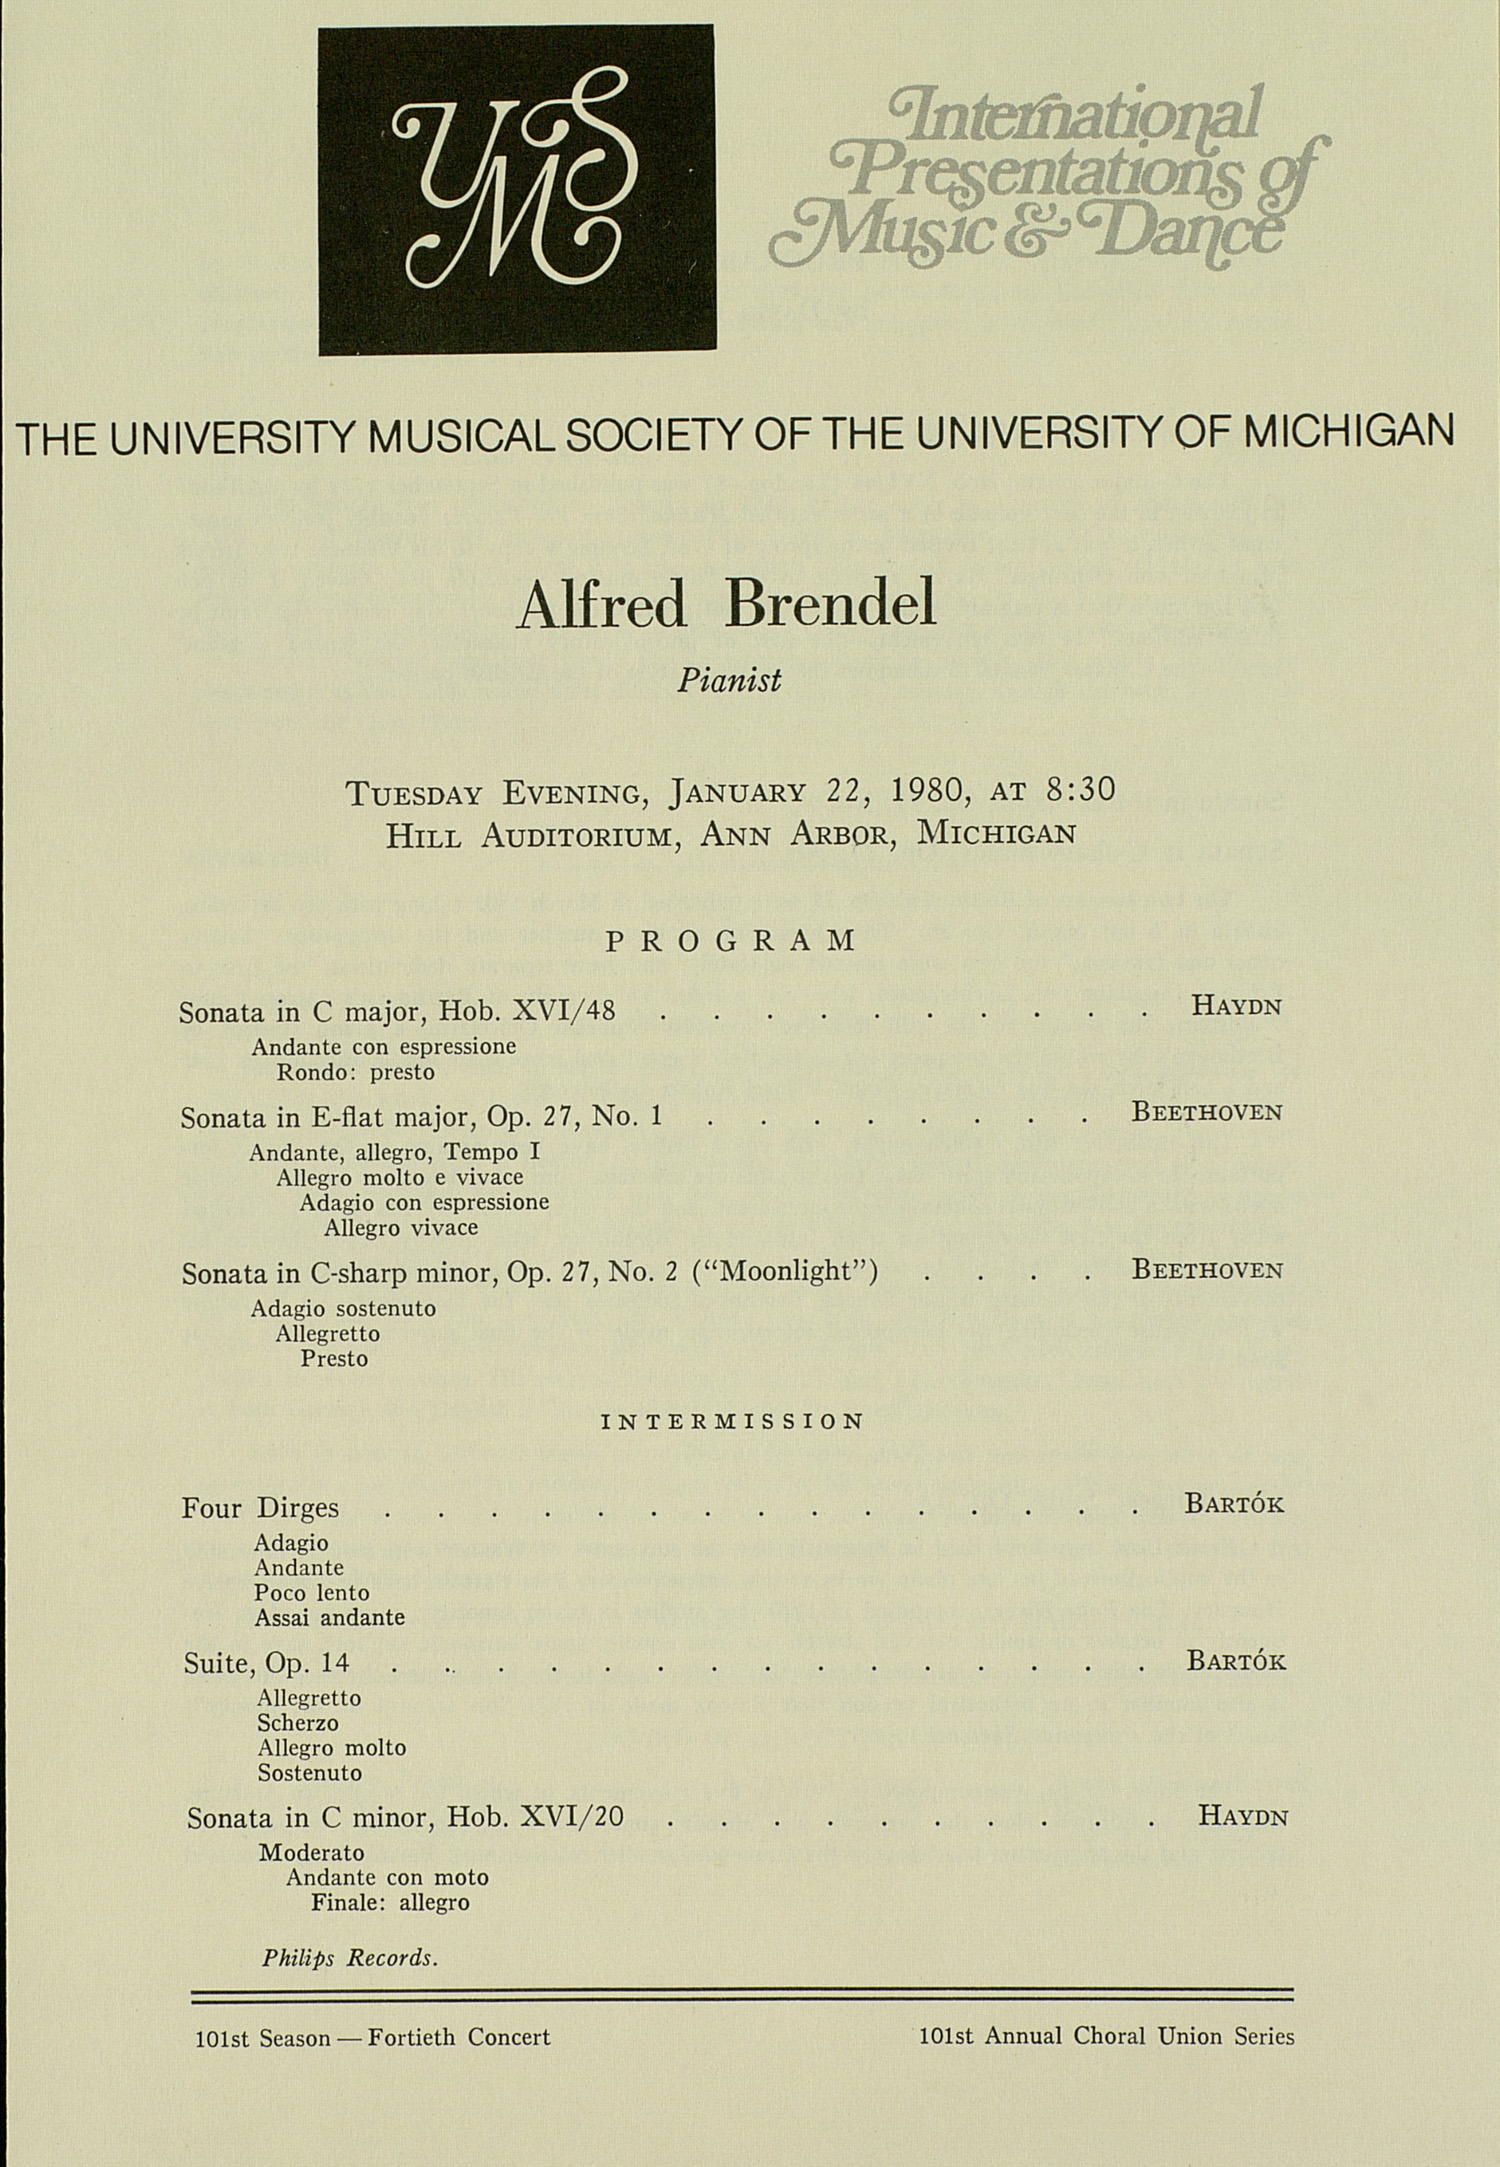 UMS Concert Program, January 22, 1980: International Presentations Of Music & Dance --  image